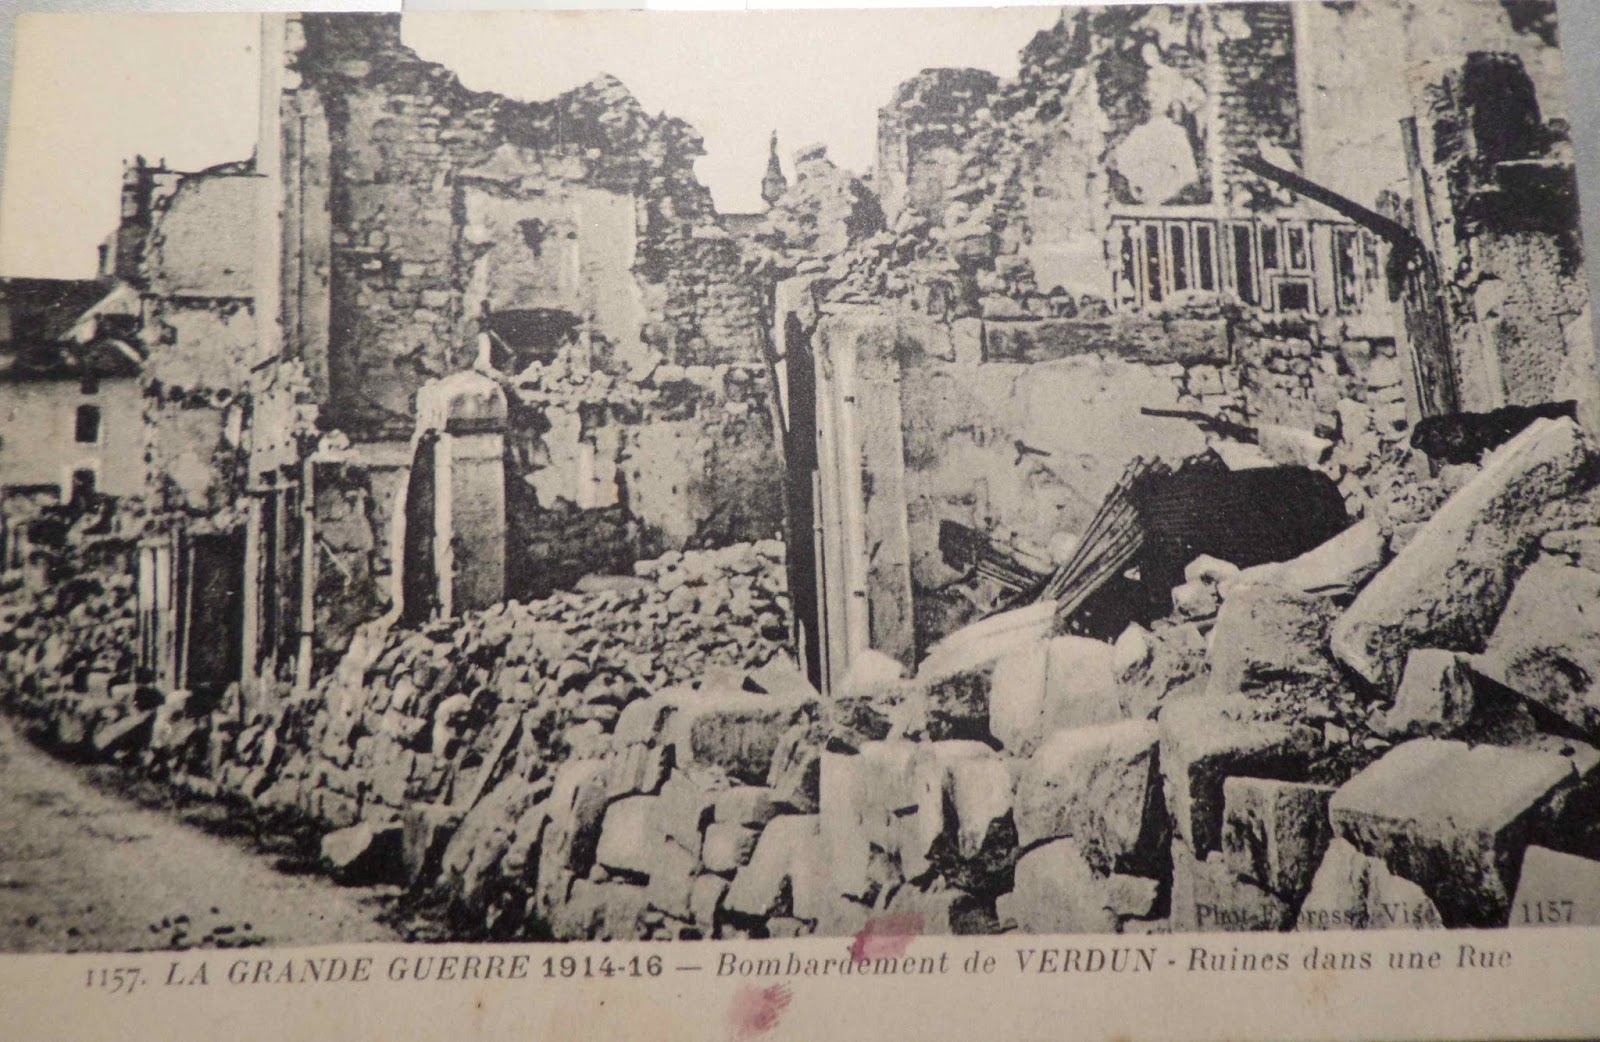 battle of verdun essay French soldier's diary from the battle of verdun, 23 may 1916  closure  assessment – essay / dbq: explain in detail the battle of verdun, german and  french.